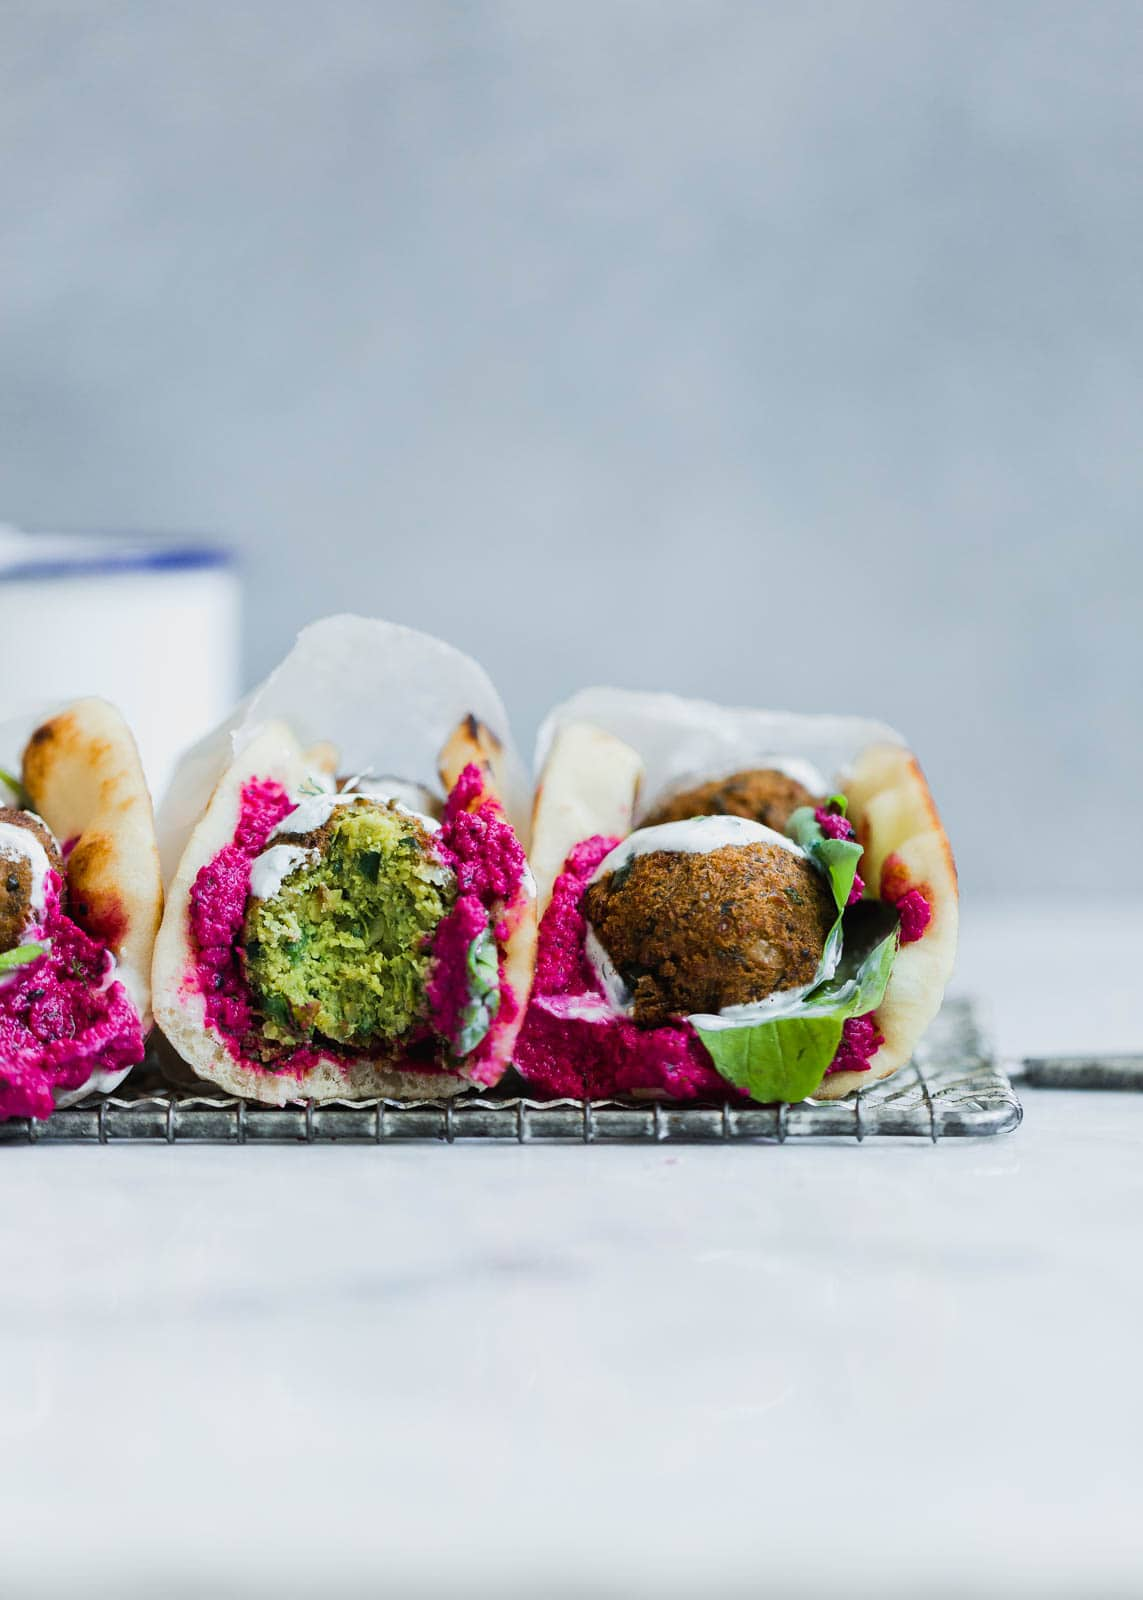 green falafel sandwiches on wire rack